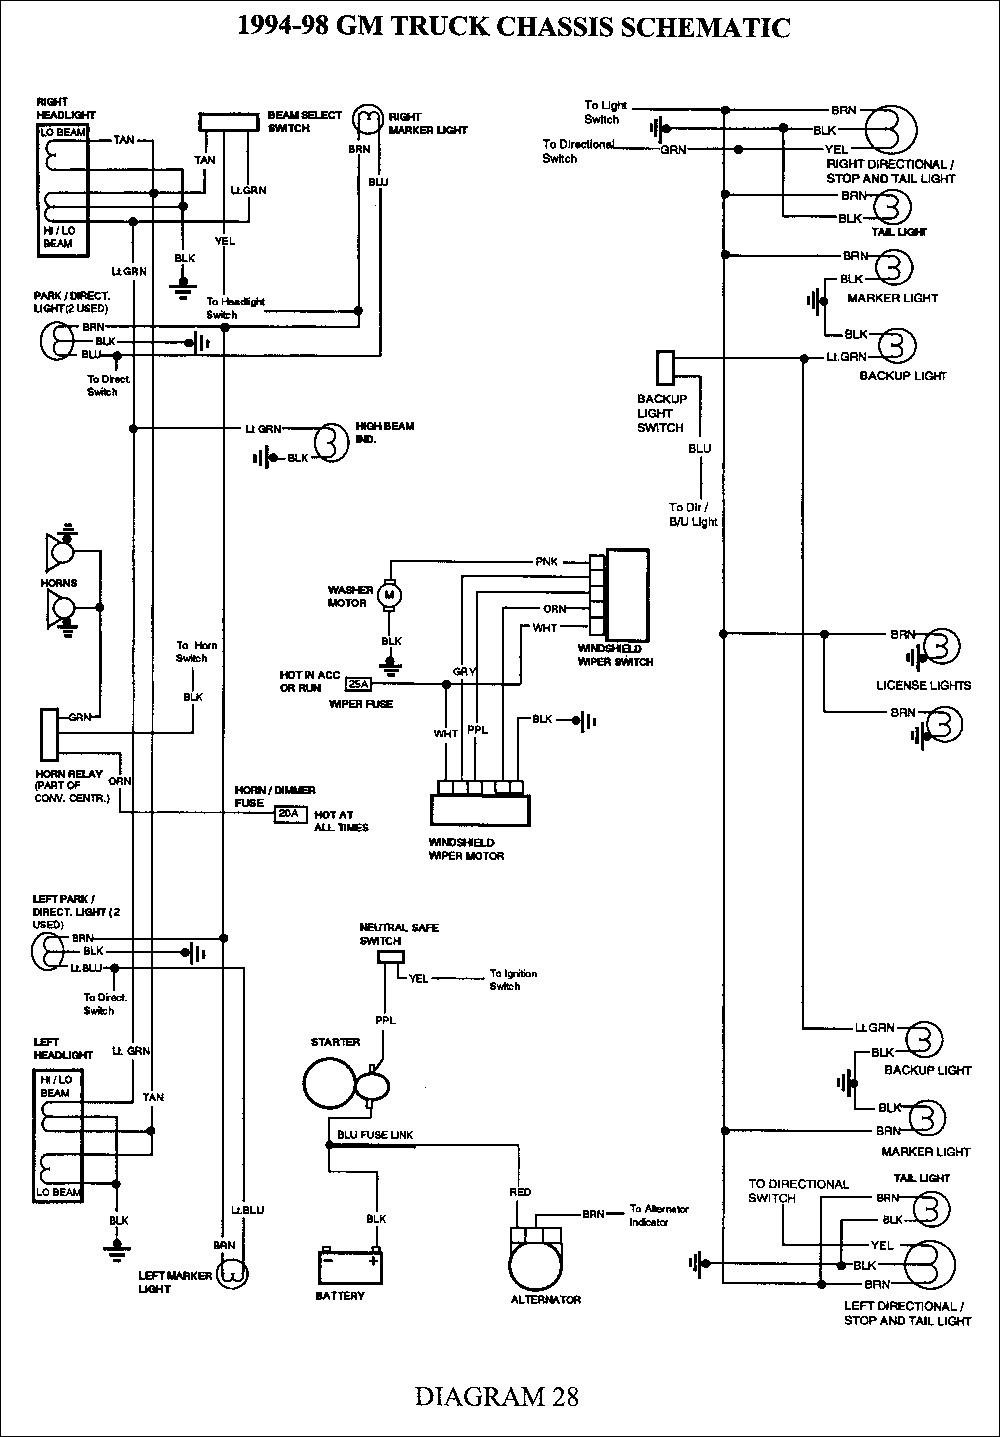 wiring headlight 2002 gmc 1500 detailed schematics diagram rh  politicallyofftarget com 97 Chevy 1500 Fuel Pump Fuse Diagram 1997 Chevy  Fuel Pump Wiring ...